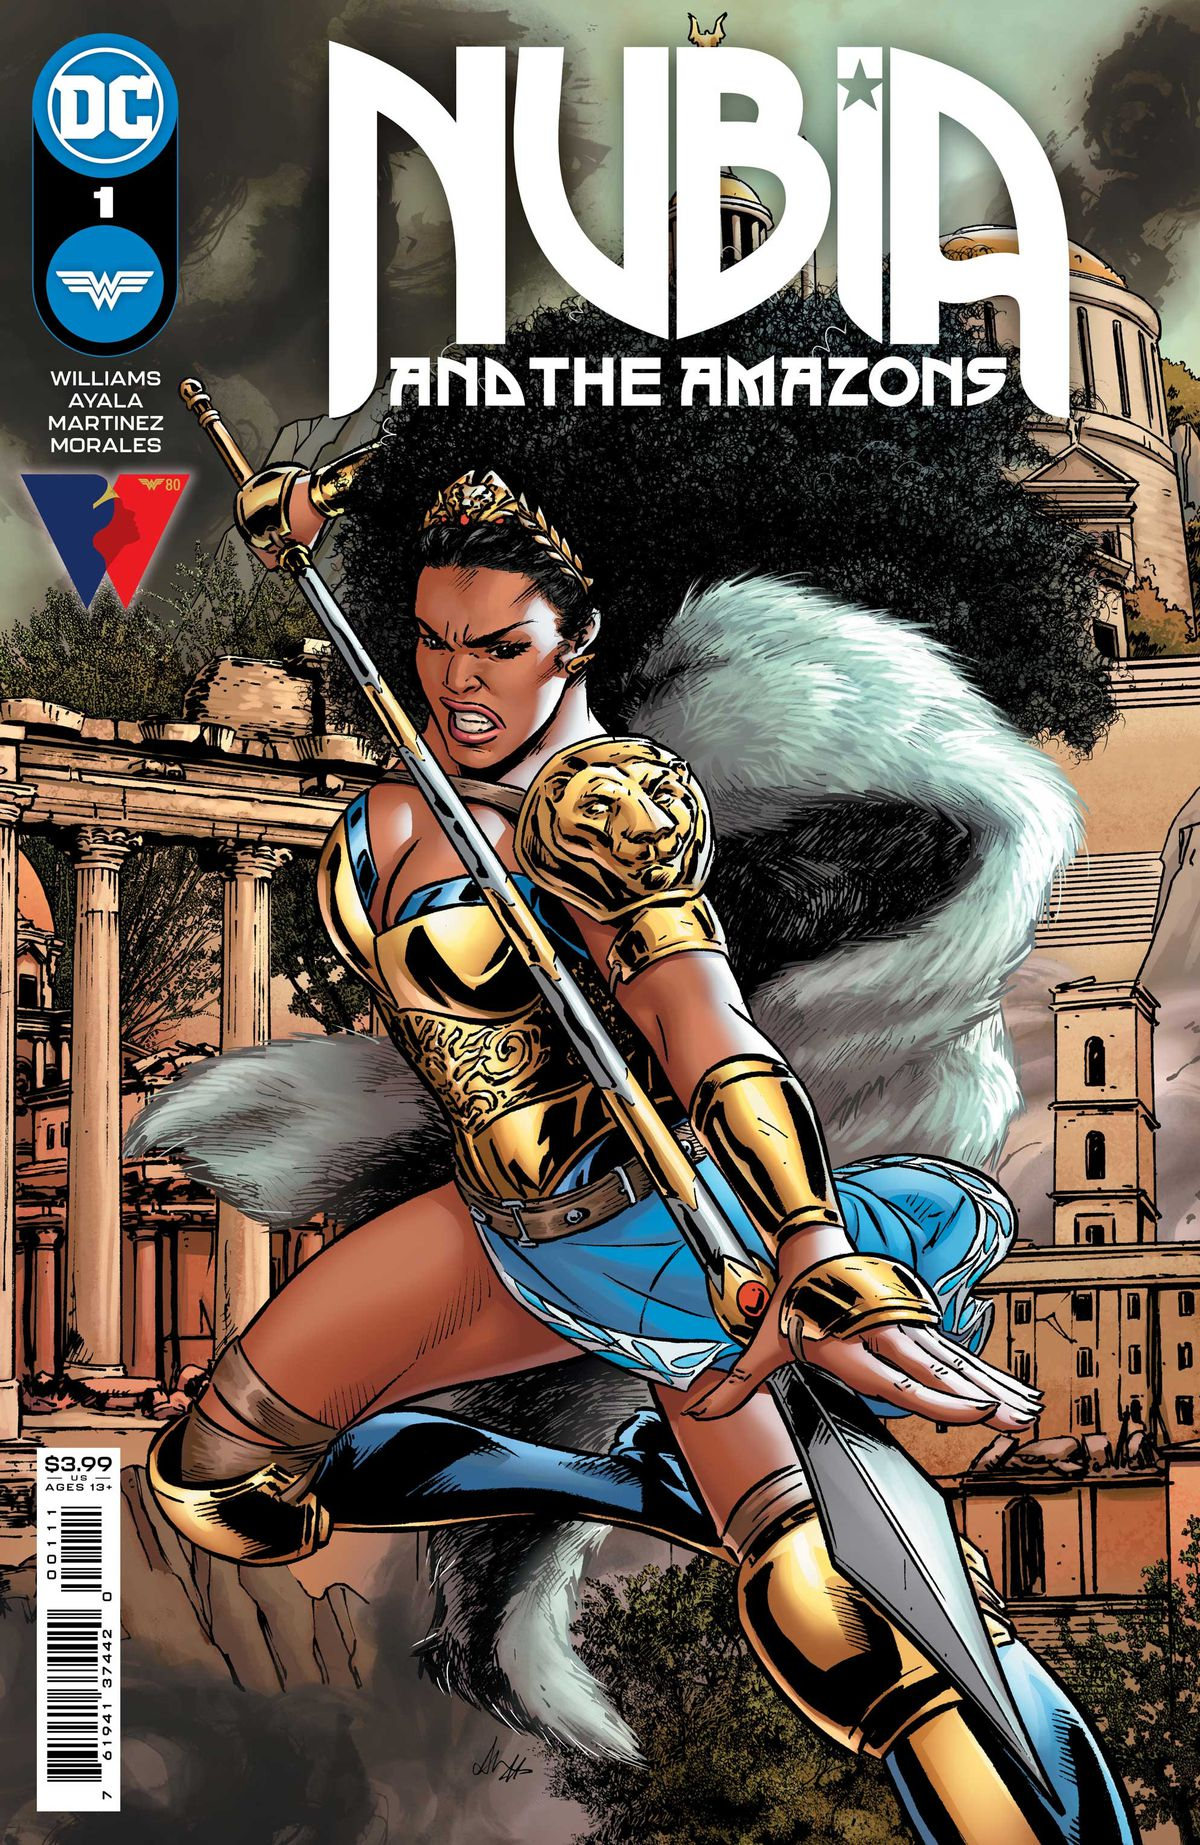 Nubia, queen of the Amazons, brandishes a spear on the cover of Nubia and the Amazons #1 (2021).